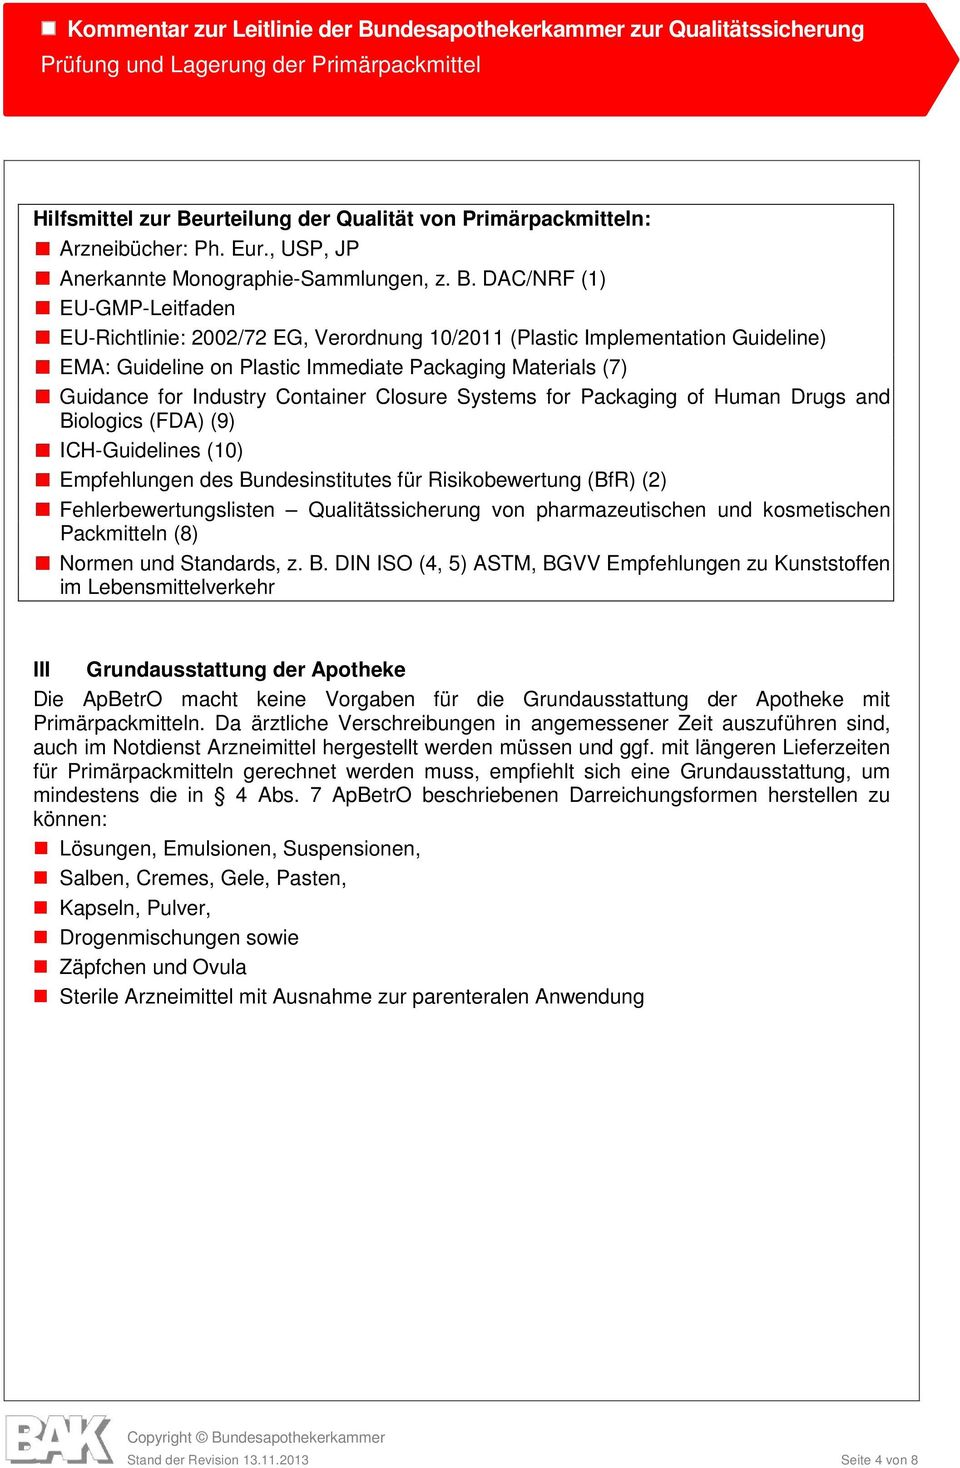 DAC/NRF (1) EU-GMP-Leitfaden EU-Richtlinie: 2002/72 EG, Verordnung 10/2011 (Plastic Implementation Guideline) EMA: Guideline on Plastic Immediate Packaging Materials (7) Guidance for Industry